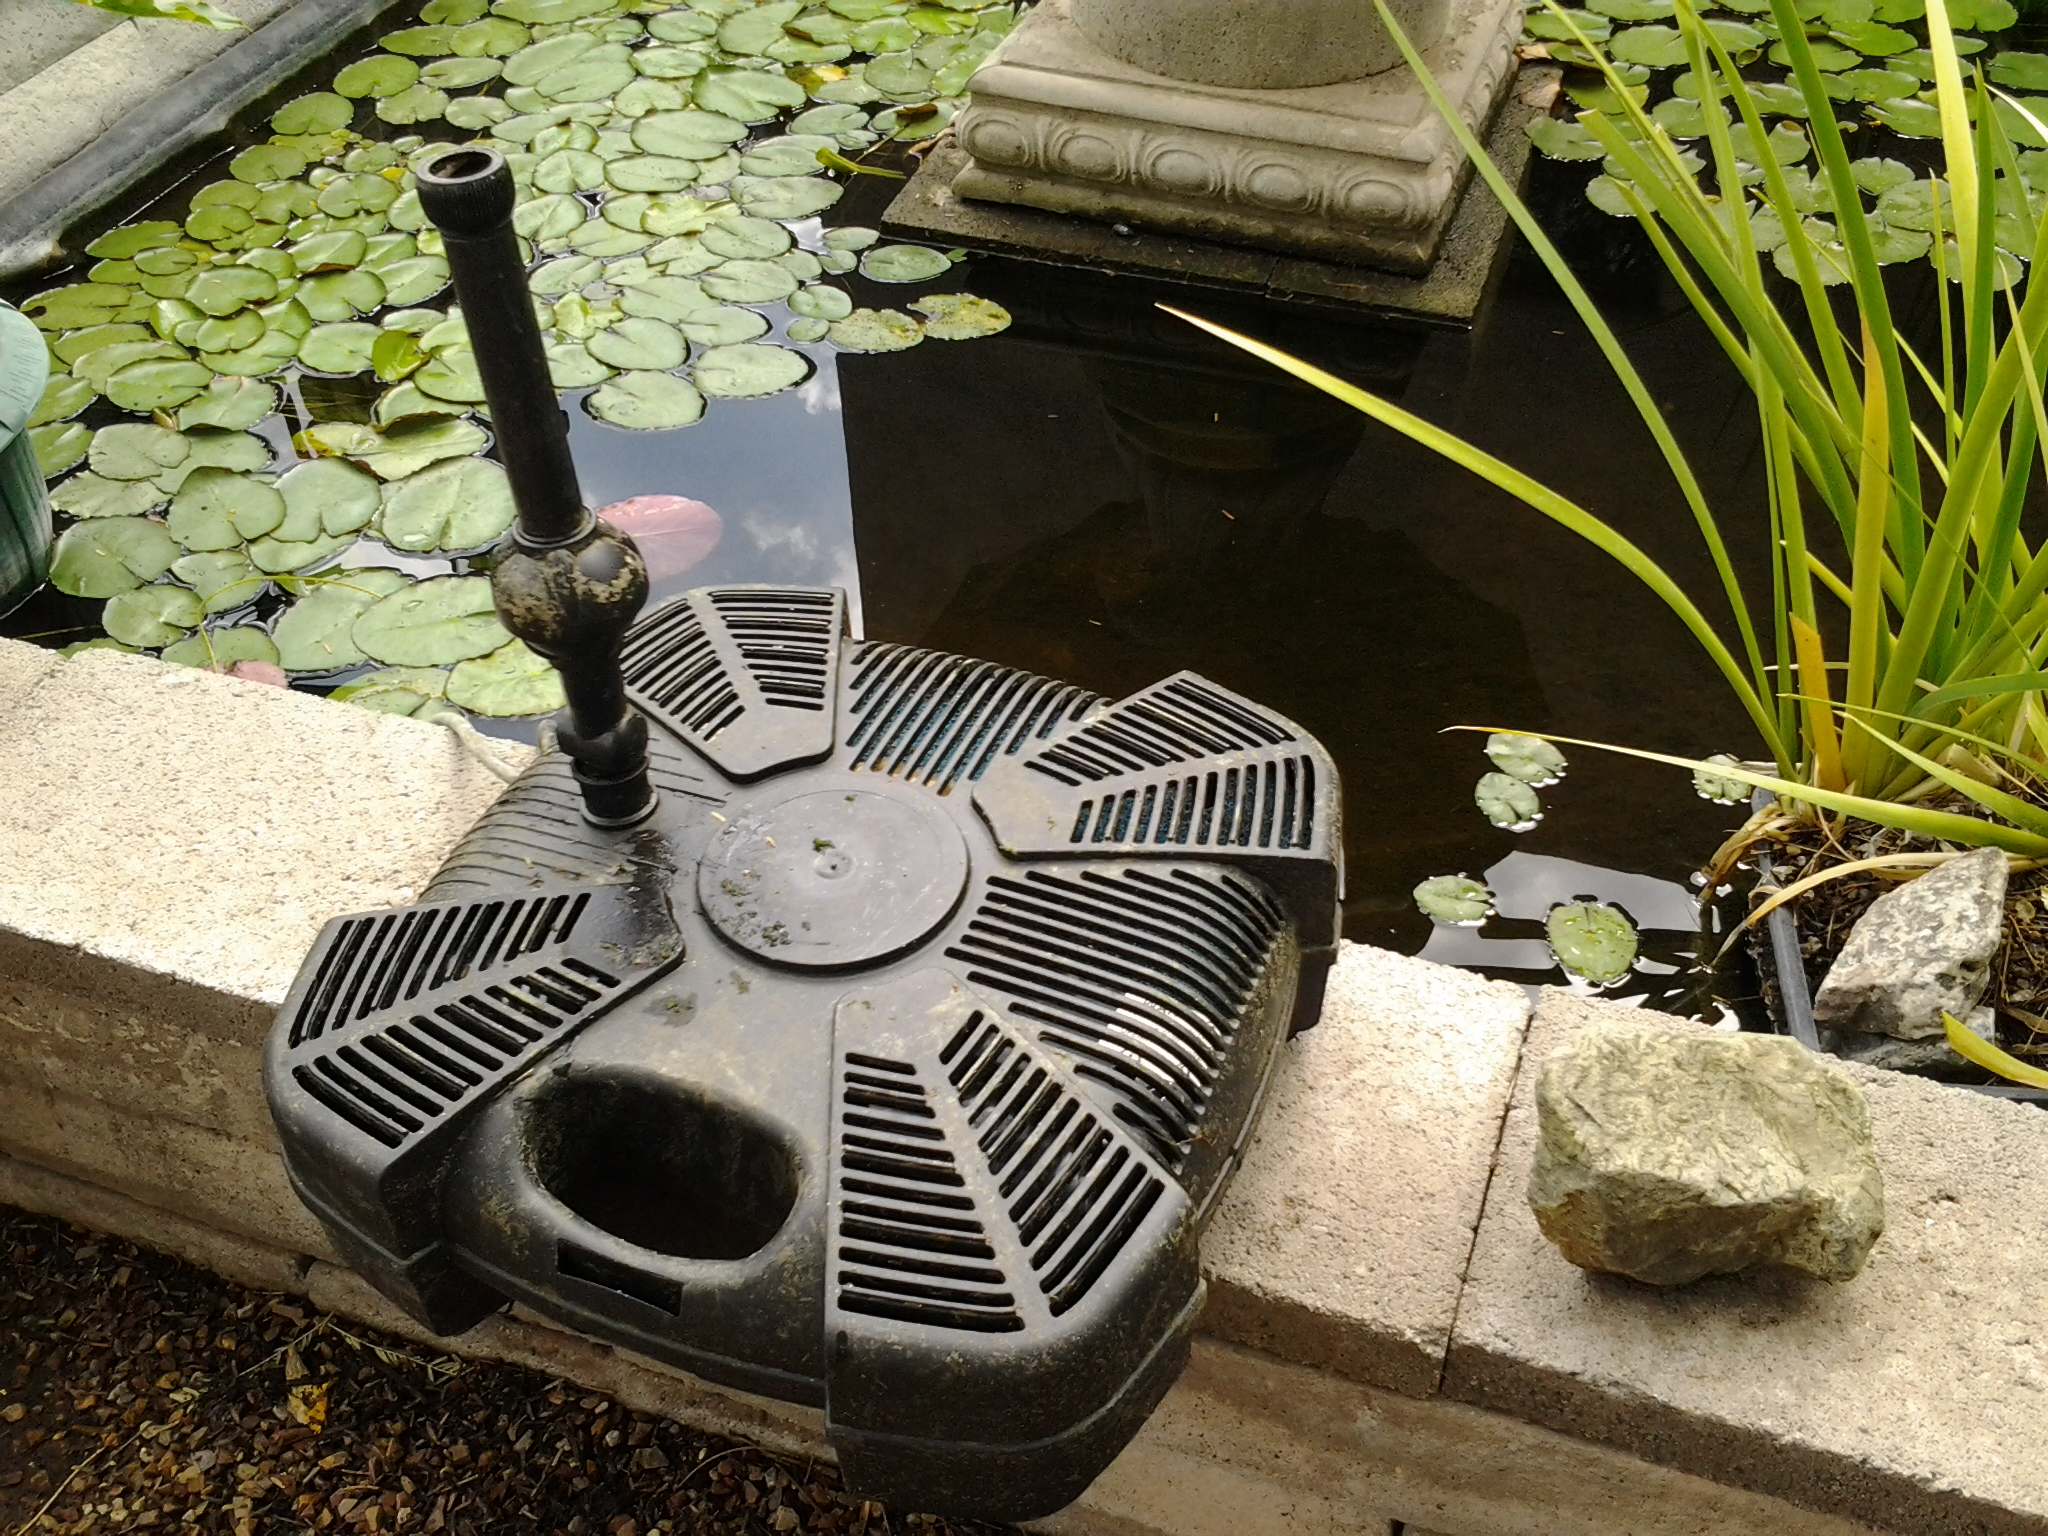 Best pond filter system all in one lifegard pump with uv for Small pond filter